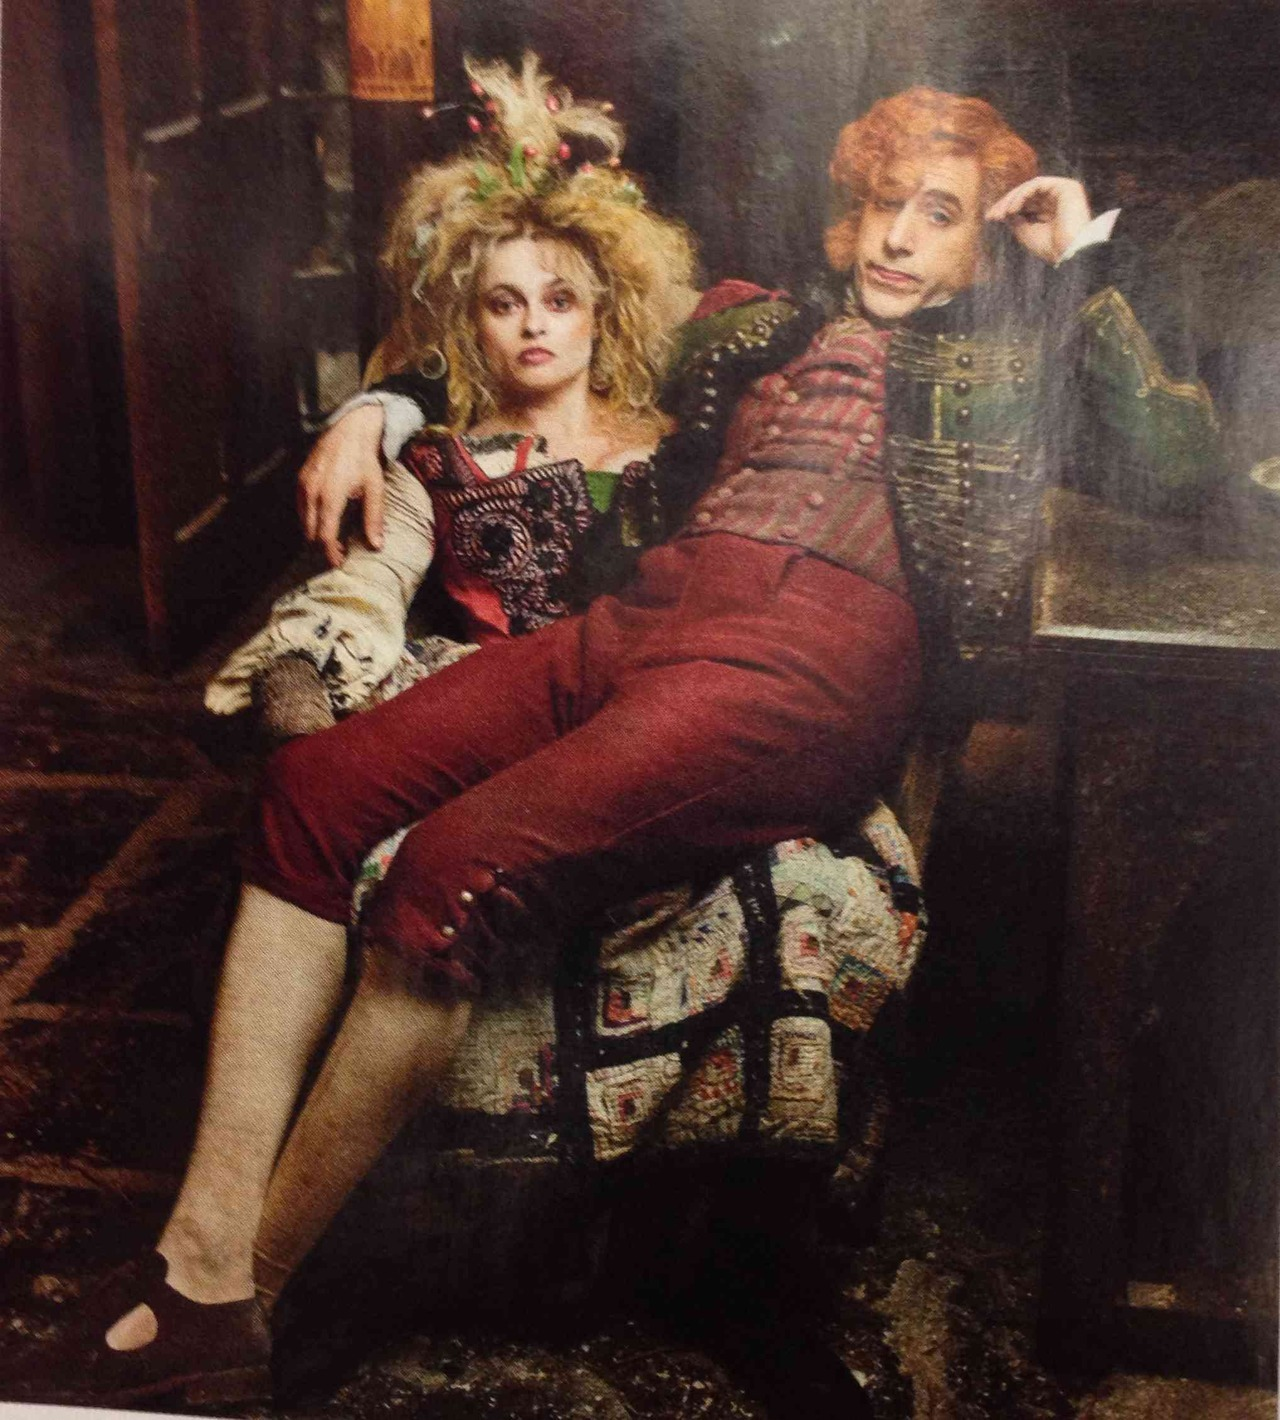 suicideblonde:  Helena Bonham Carter and Sacha Baron Cohen in Les Misérables